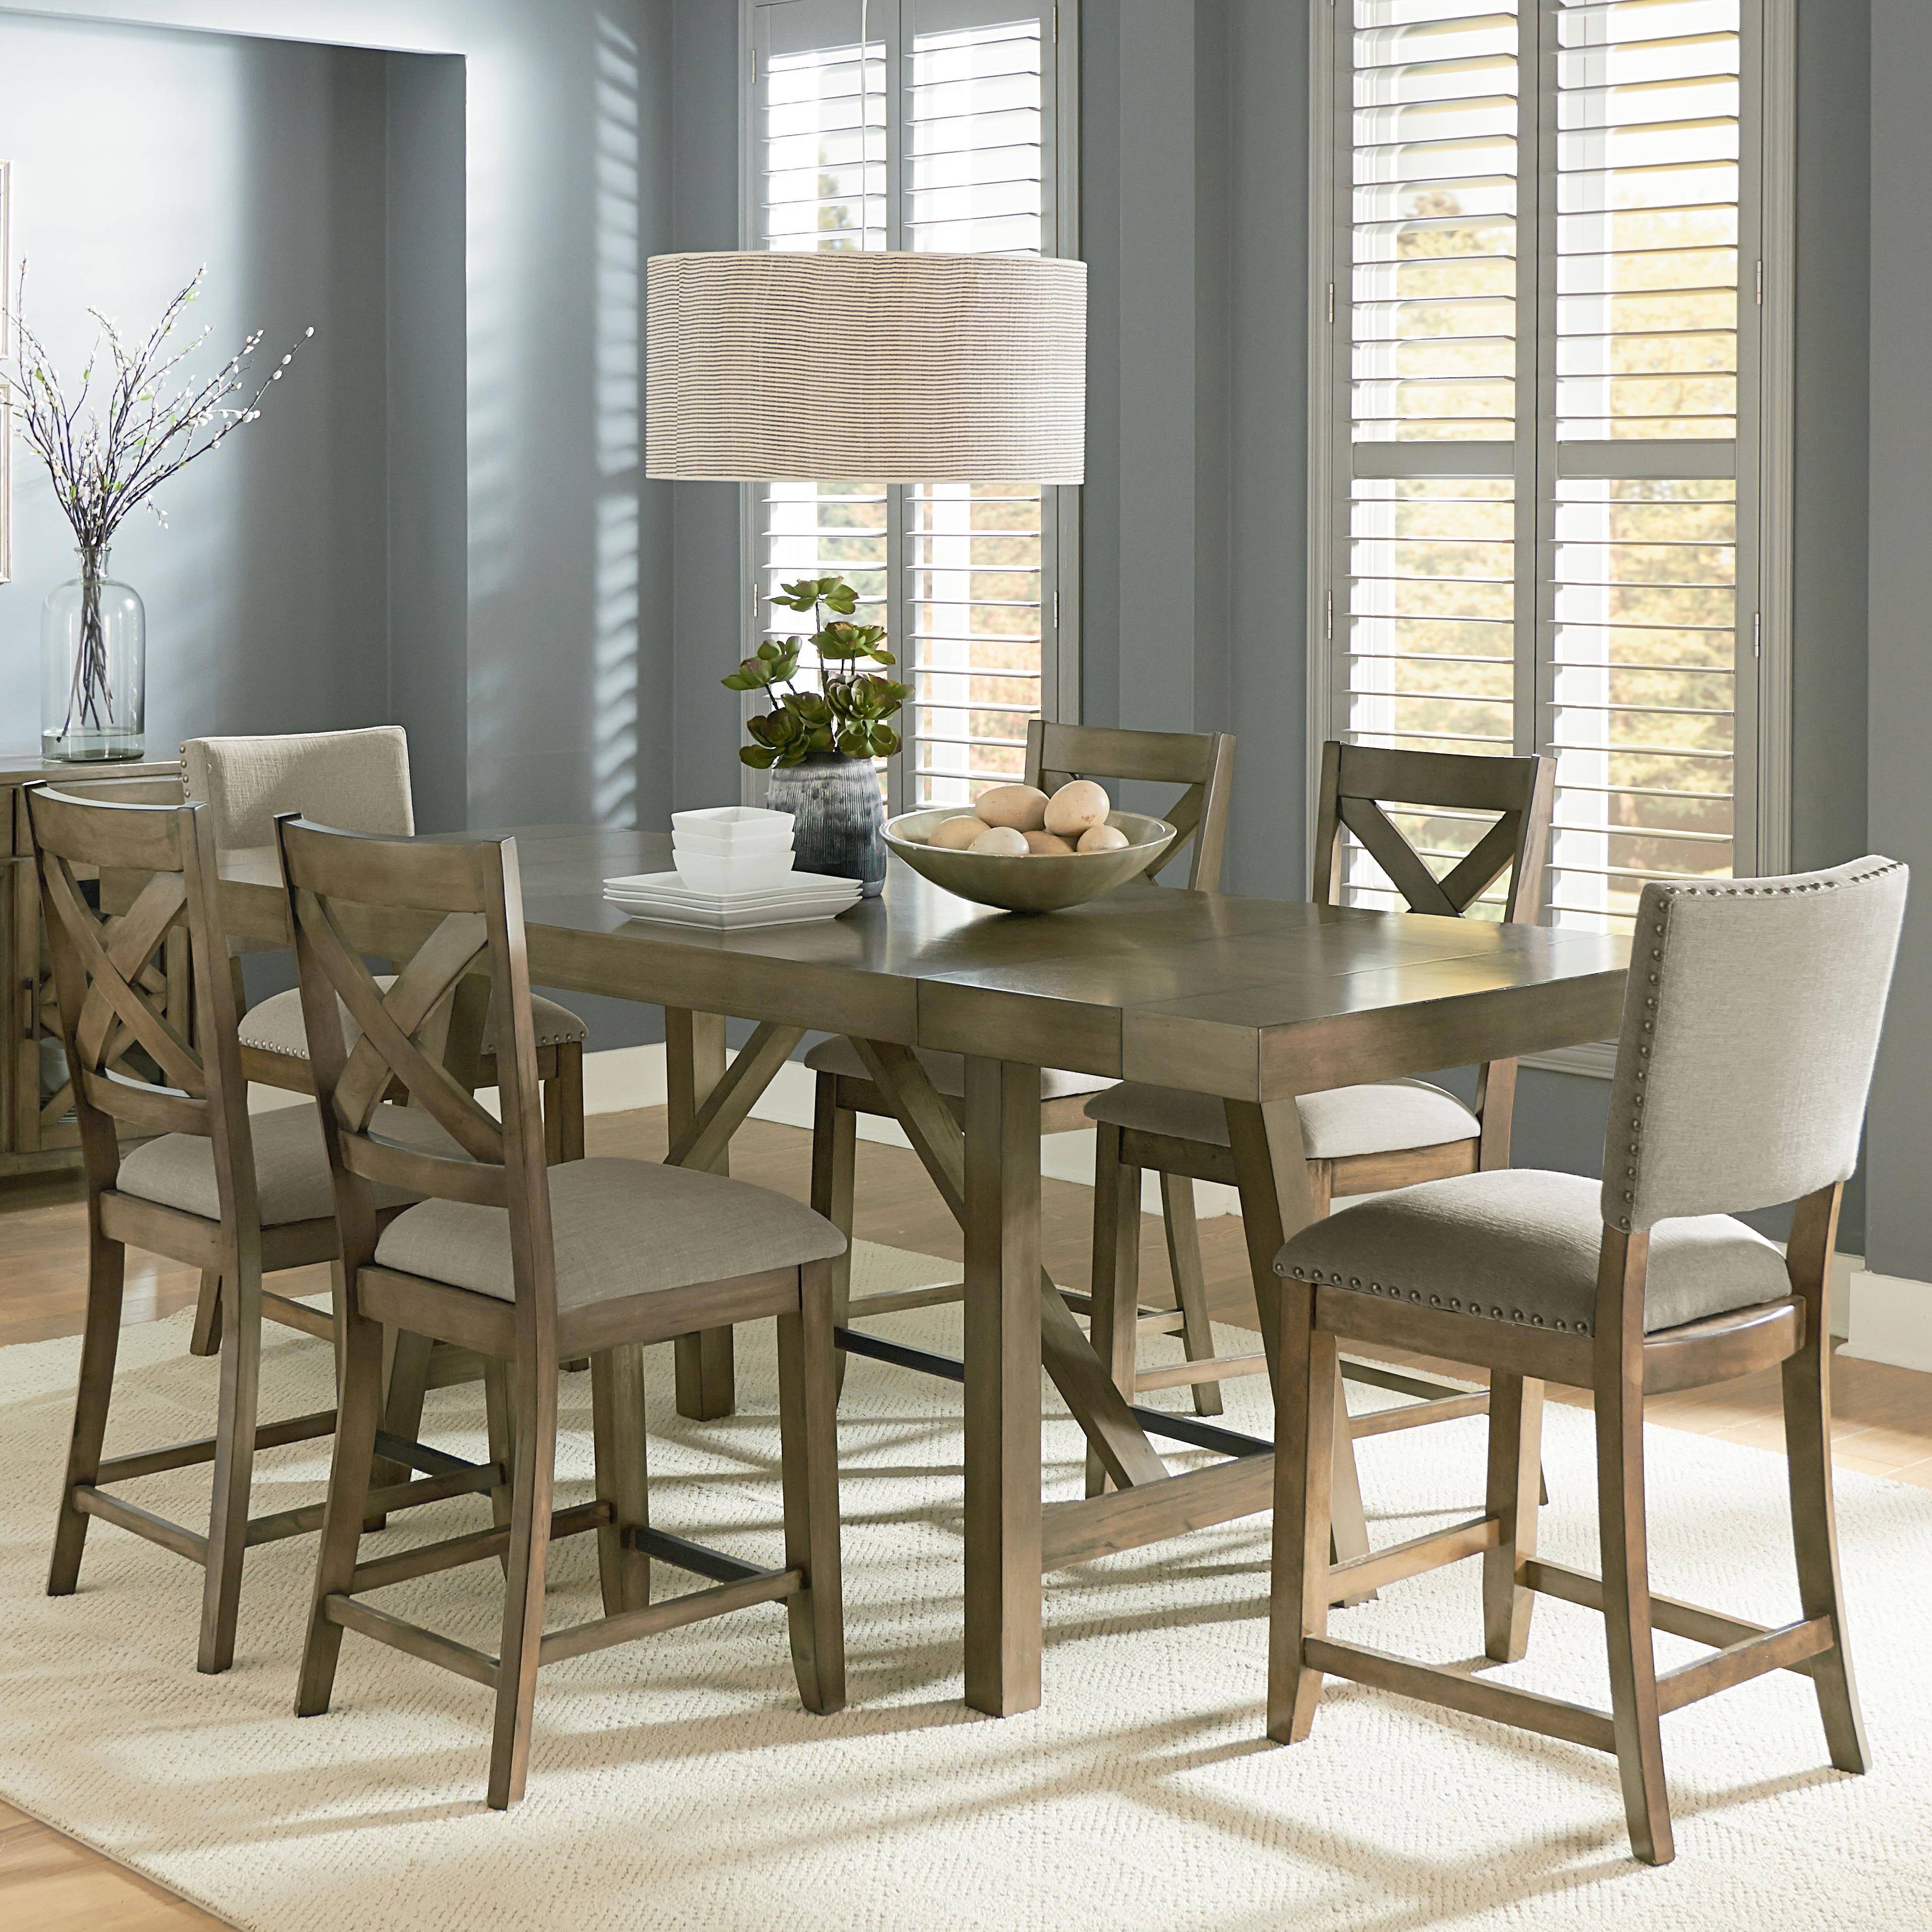 Latest Counter Height 7 Piece Dining Room Table Setstandard Furniture Within Parquet 7 Piece Dining Sets (View 6 of 25)